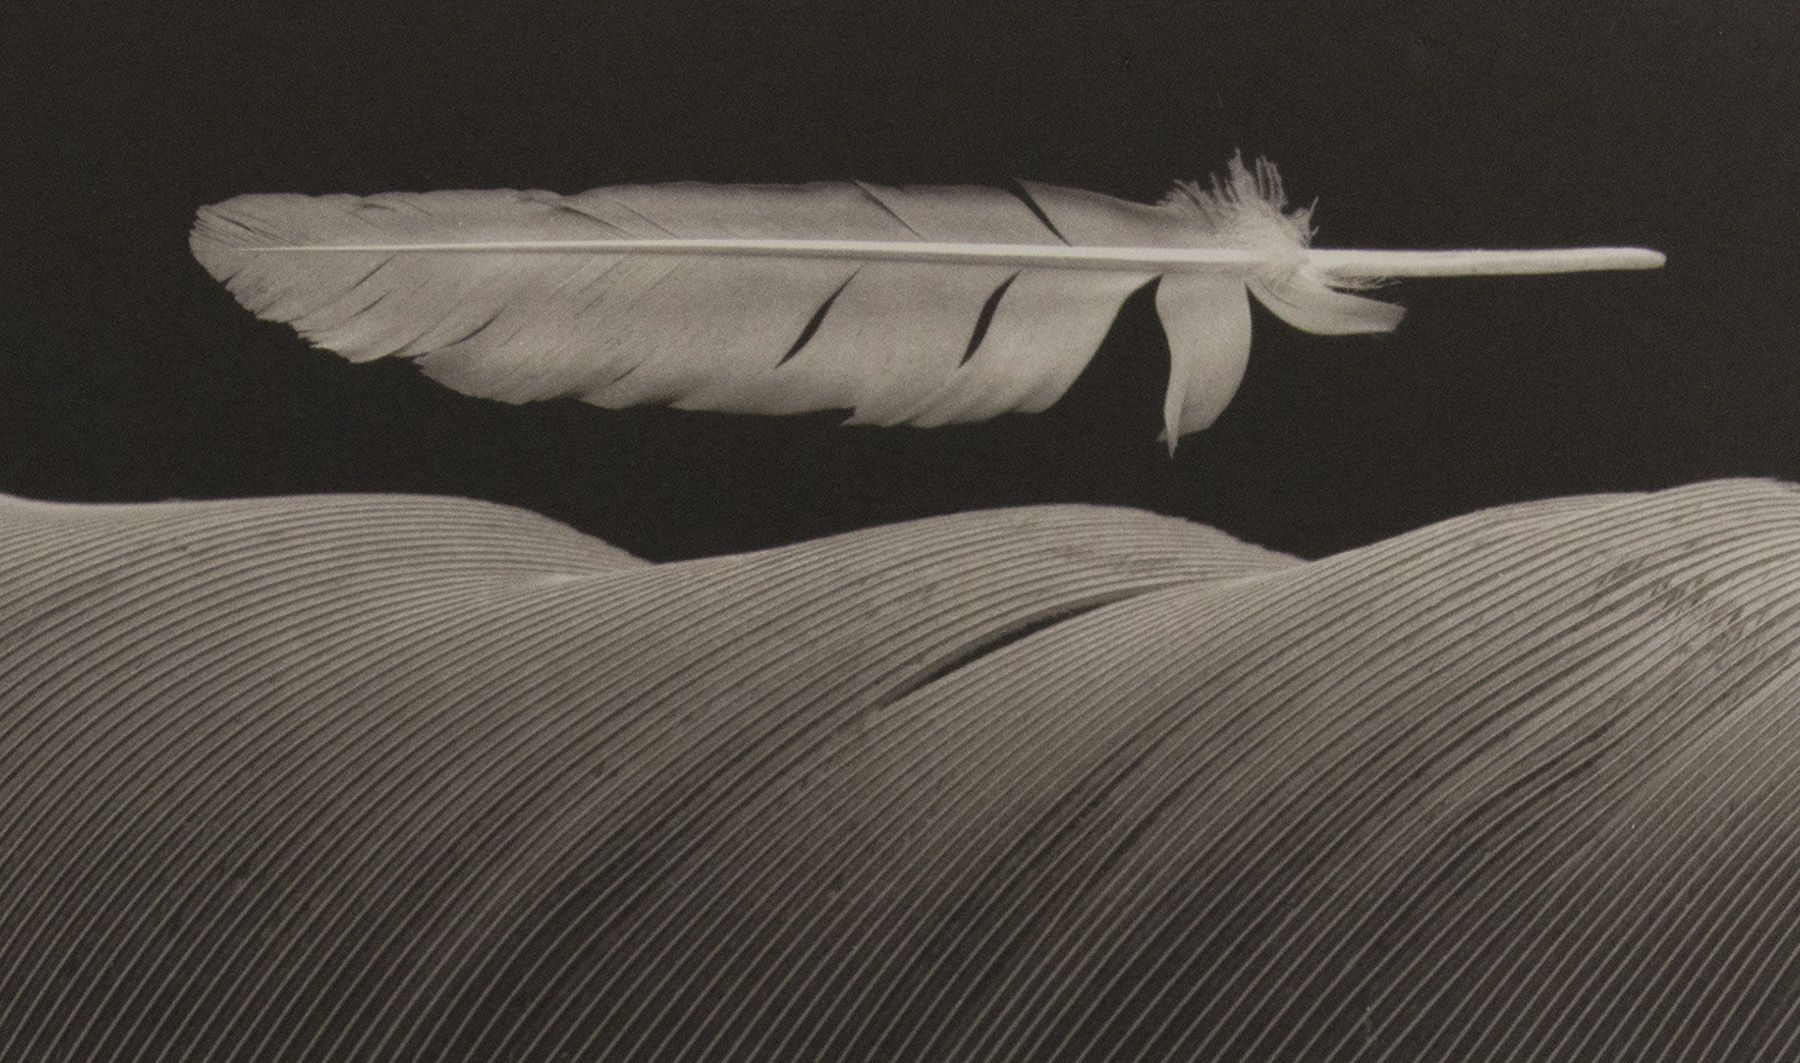 CIRCLE OF REBIRTH, FEATHER SERIES (3 OF 5), platinum photograph 1992